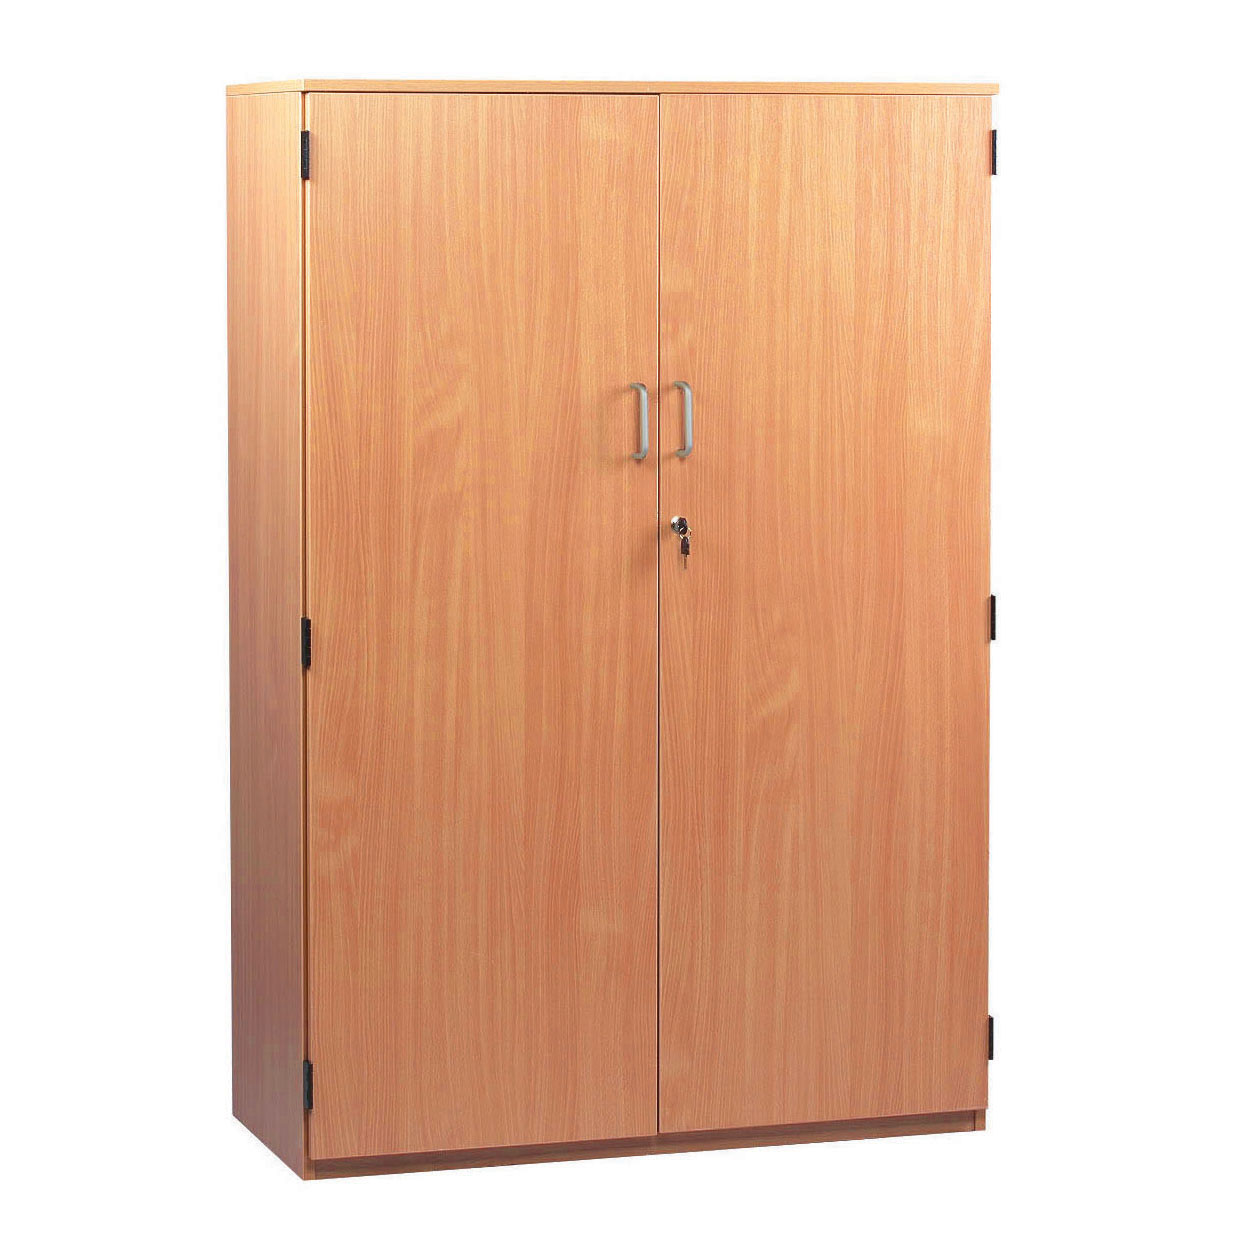 School Storage Cupboard Height 1500mm With Lockable